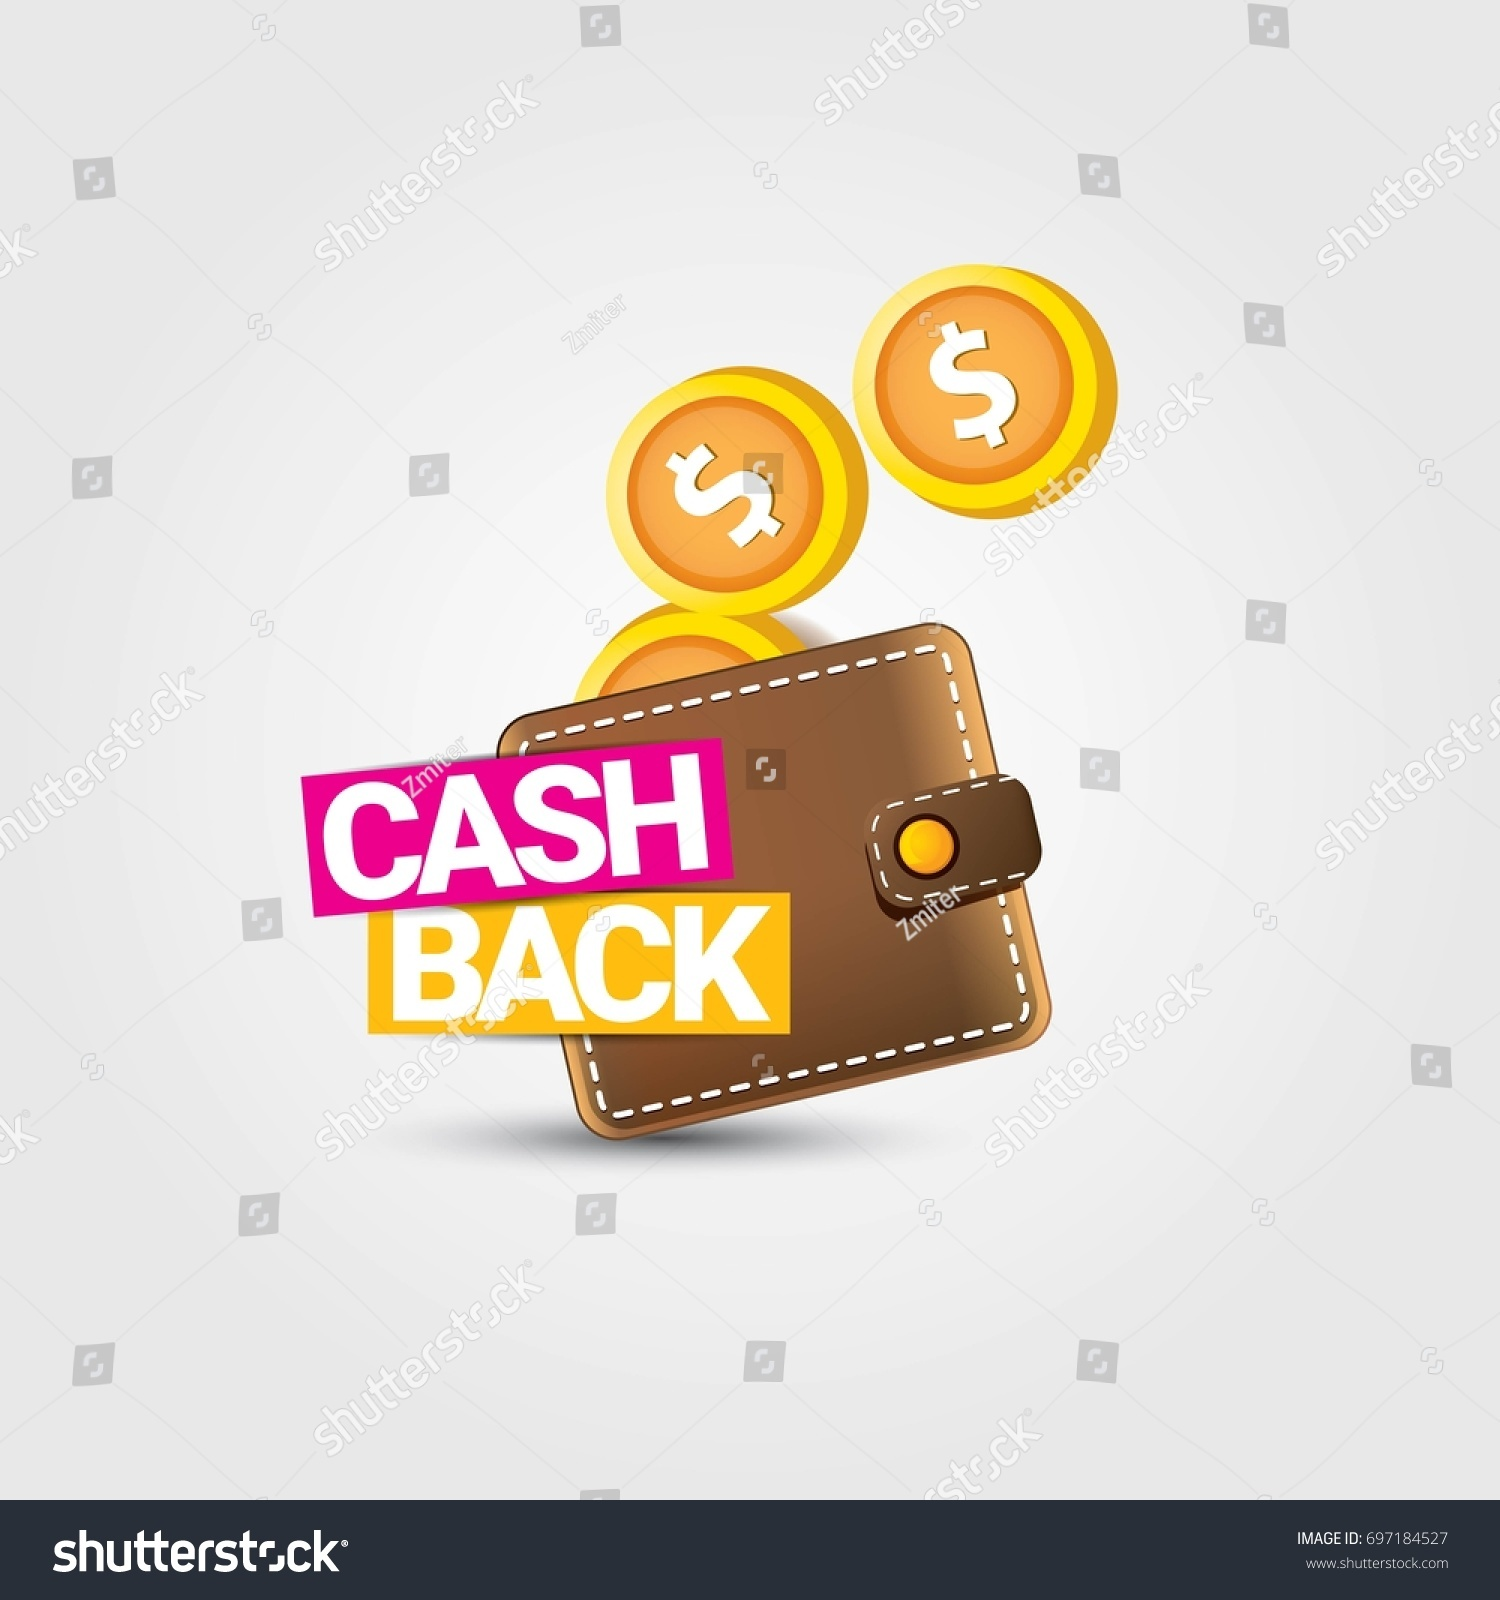 vector cash back icon golden coins stock vector royalty free 697184527 https www shutterstock com image vector vector cash back icon golden coins 697184527